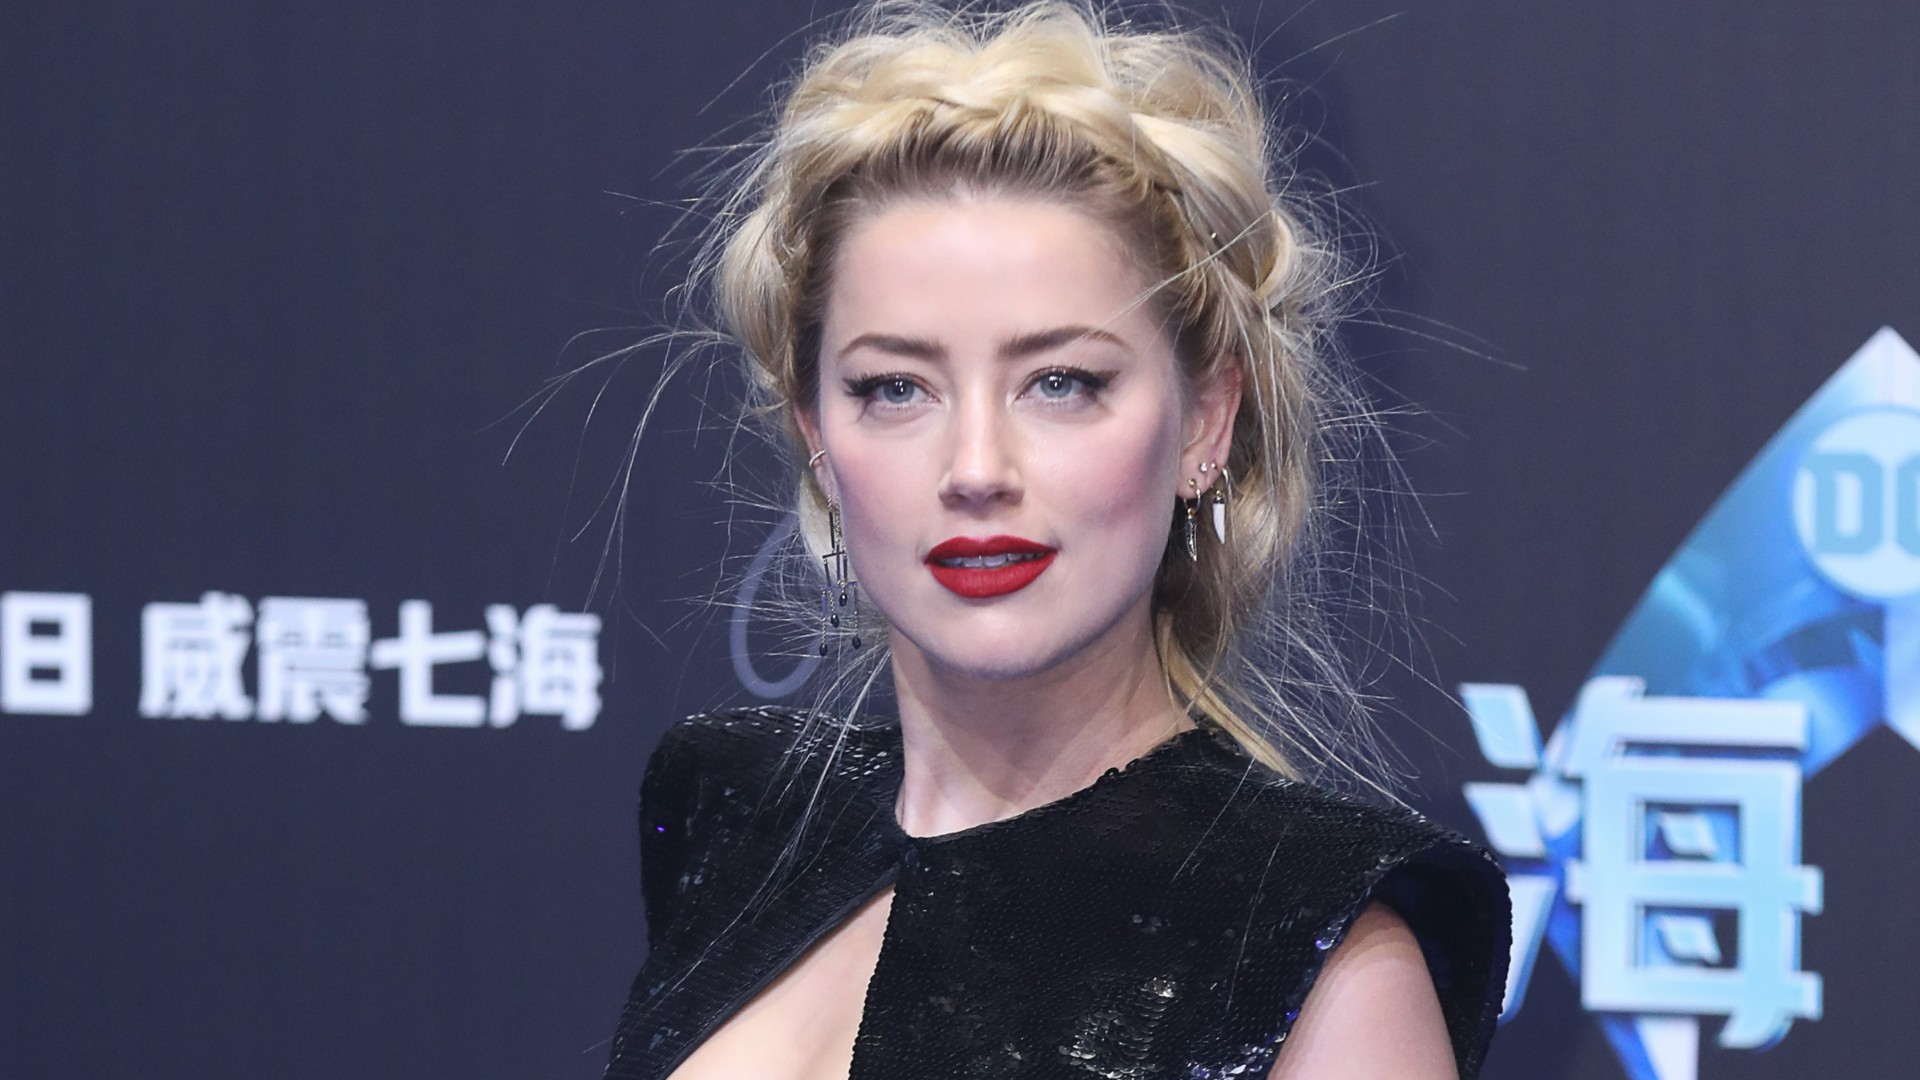 Amber Heard Discusses Her Divorce Being a Survivor in New 1920x1080